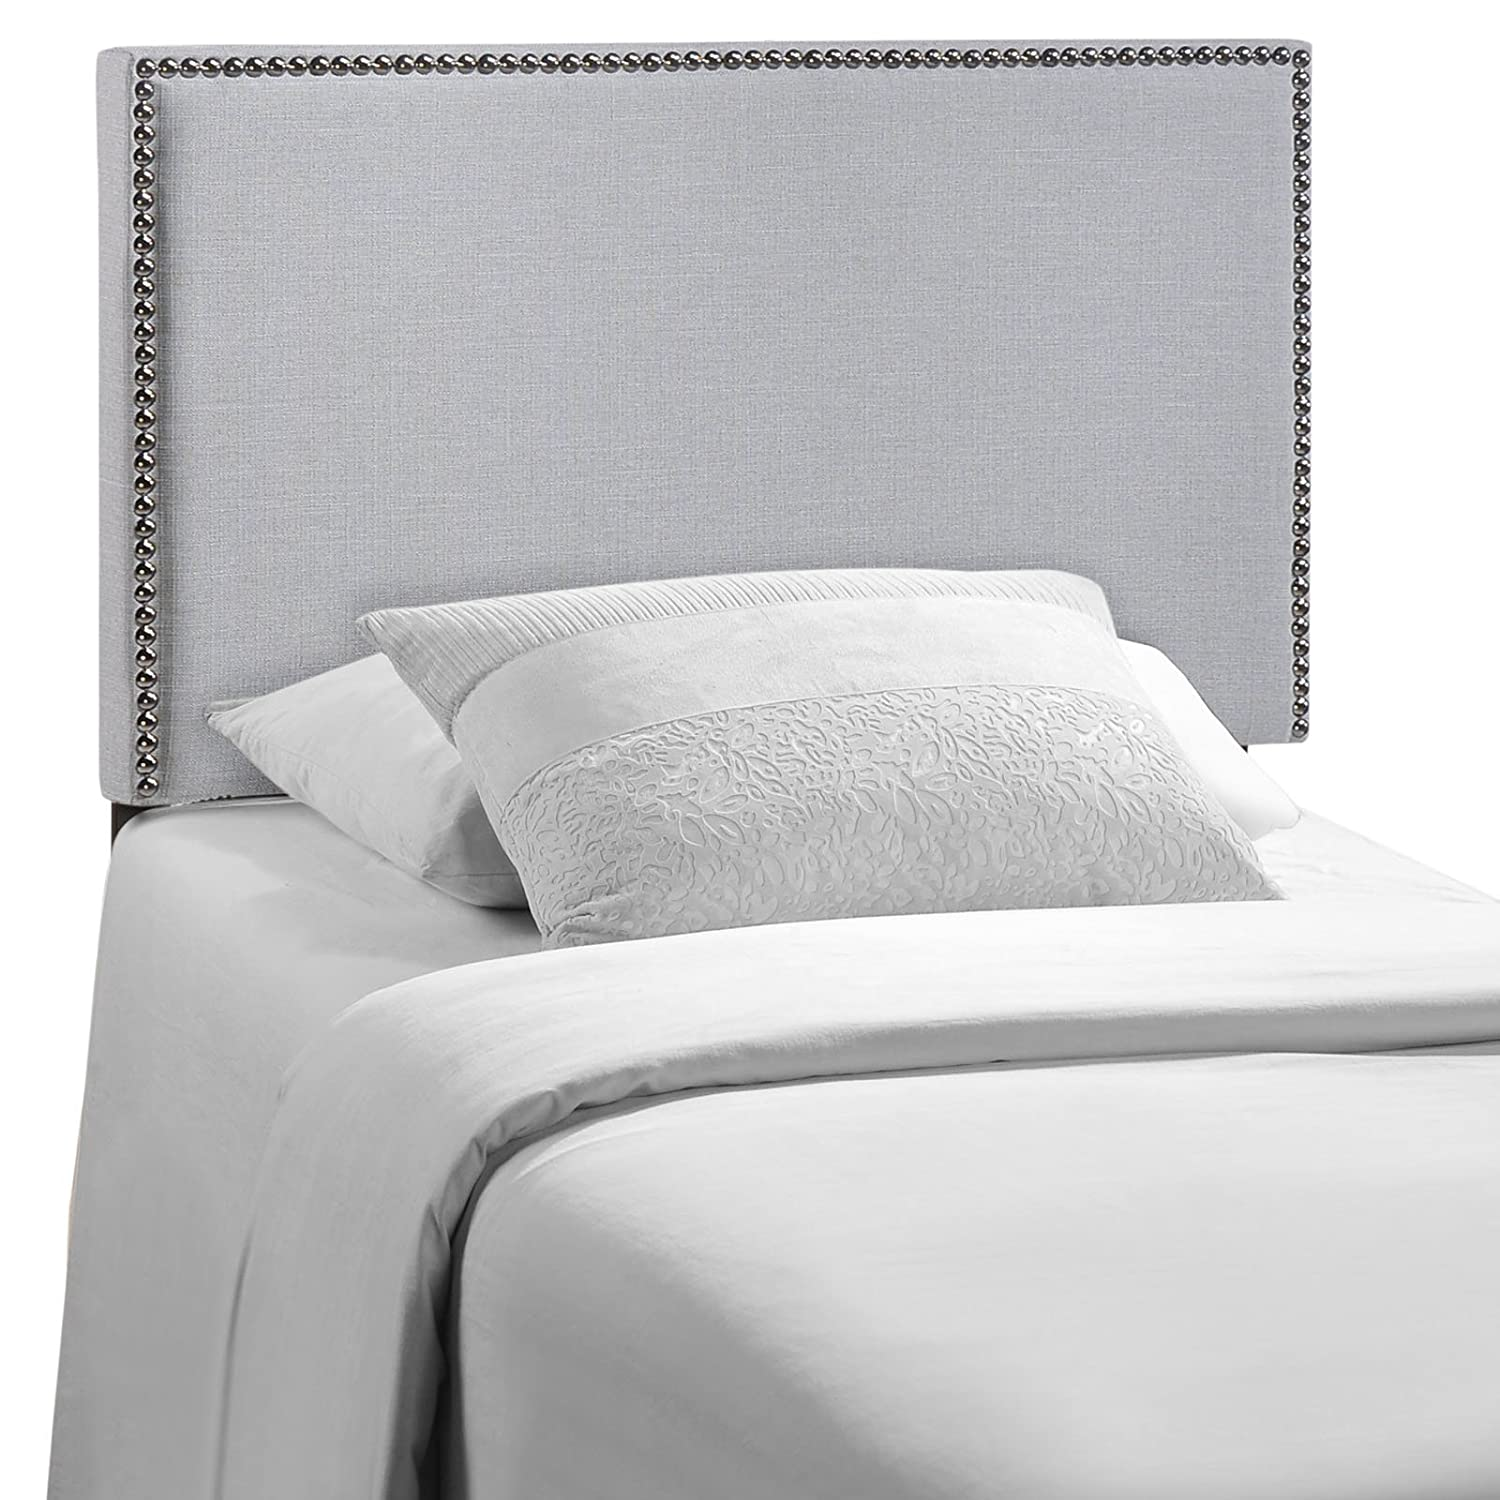 Modway Region Upholstered Linen Headboard Twin Size With